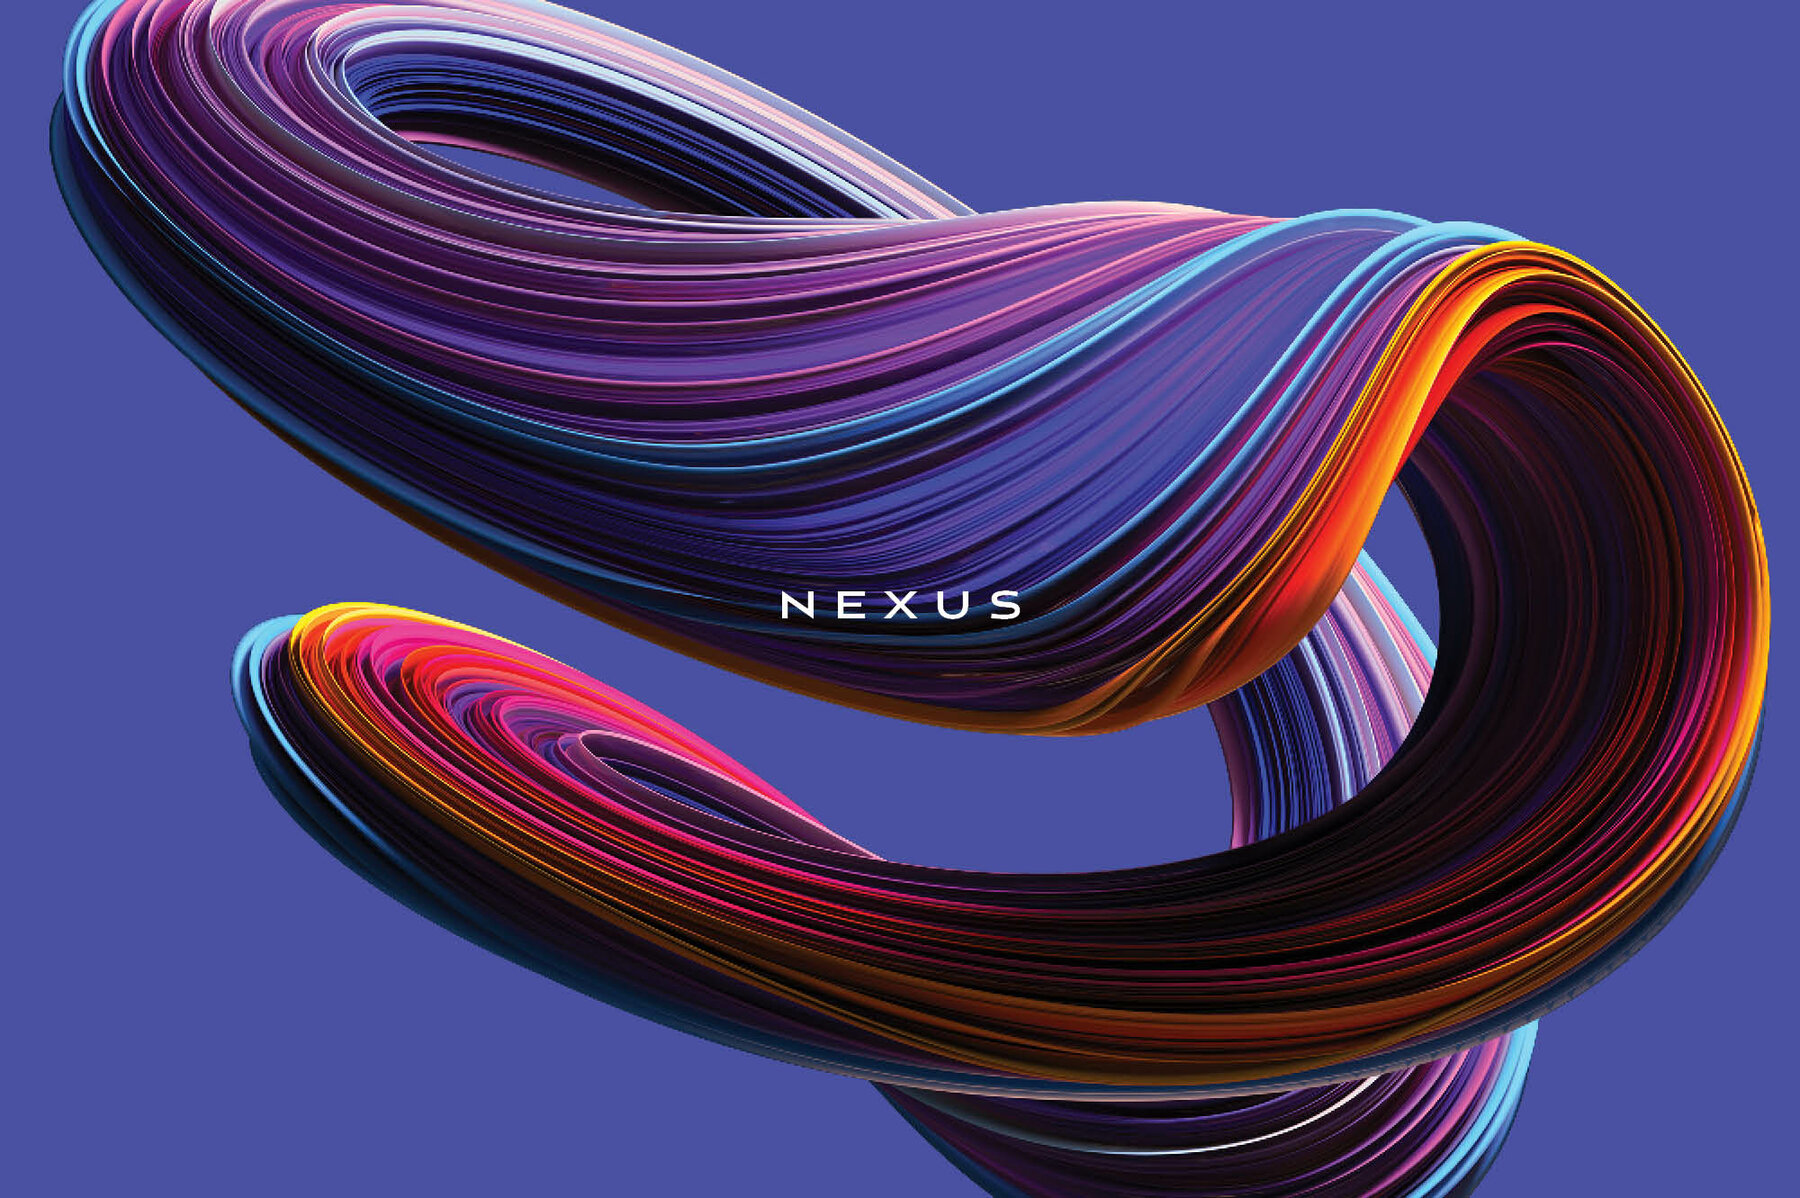 Nexus     Swirling Abstract Shapes